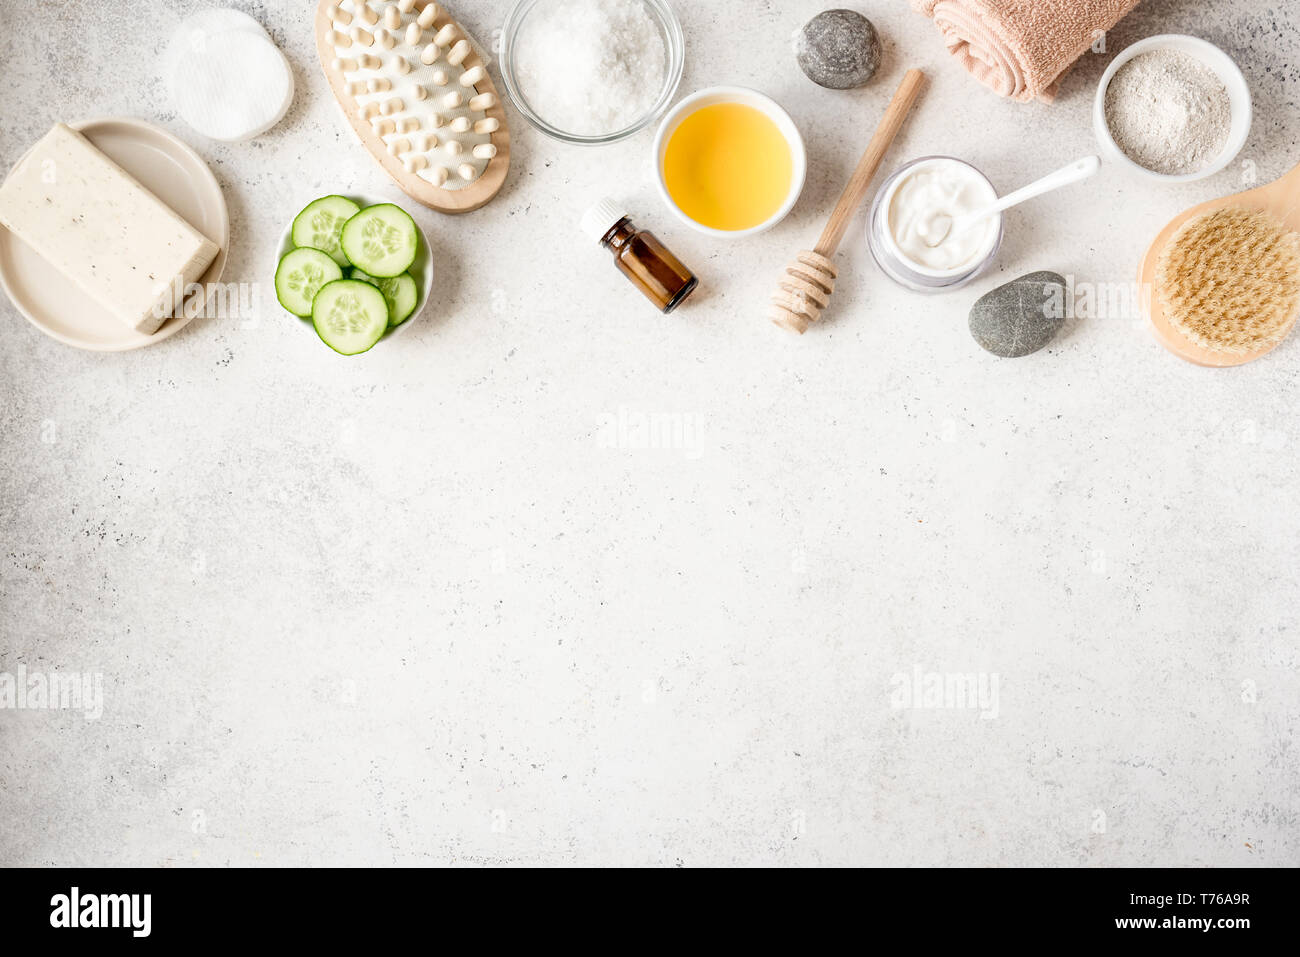 Page 3 Natural Skincare High Resolution Stock Photography And Images Alamy